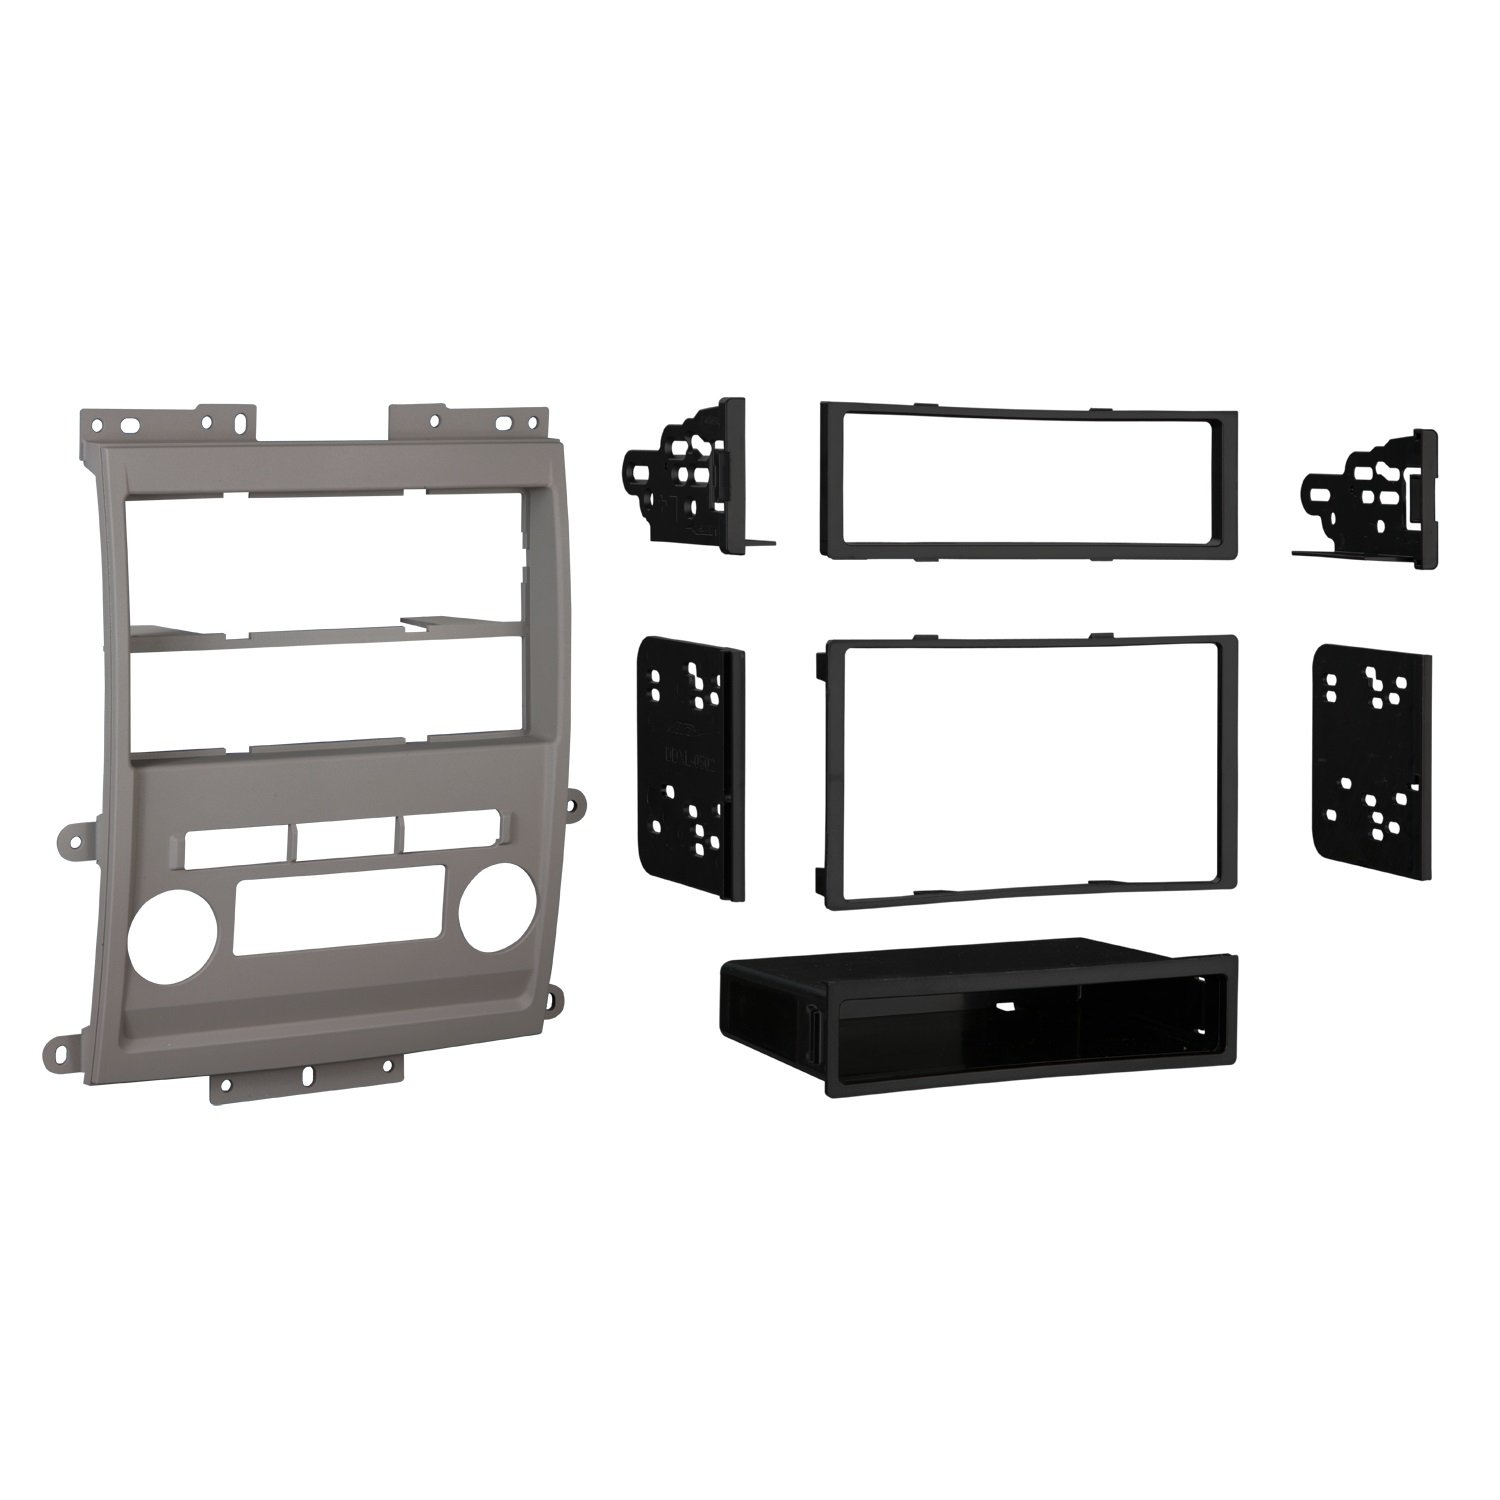 Metra 99-7428G Double DIN/ISO DIN Installation Dash Kit for 2009 Nissan Frontier LE/SE (Gray)